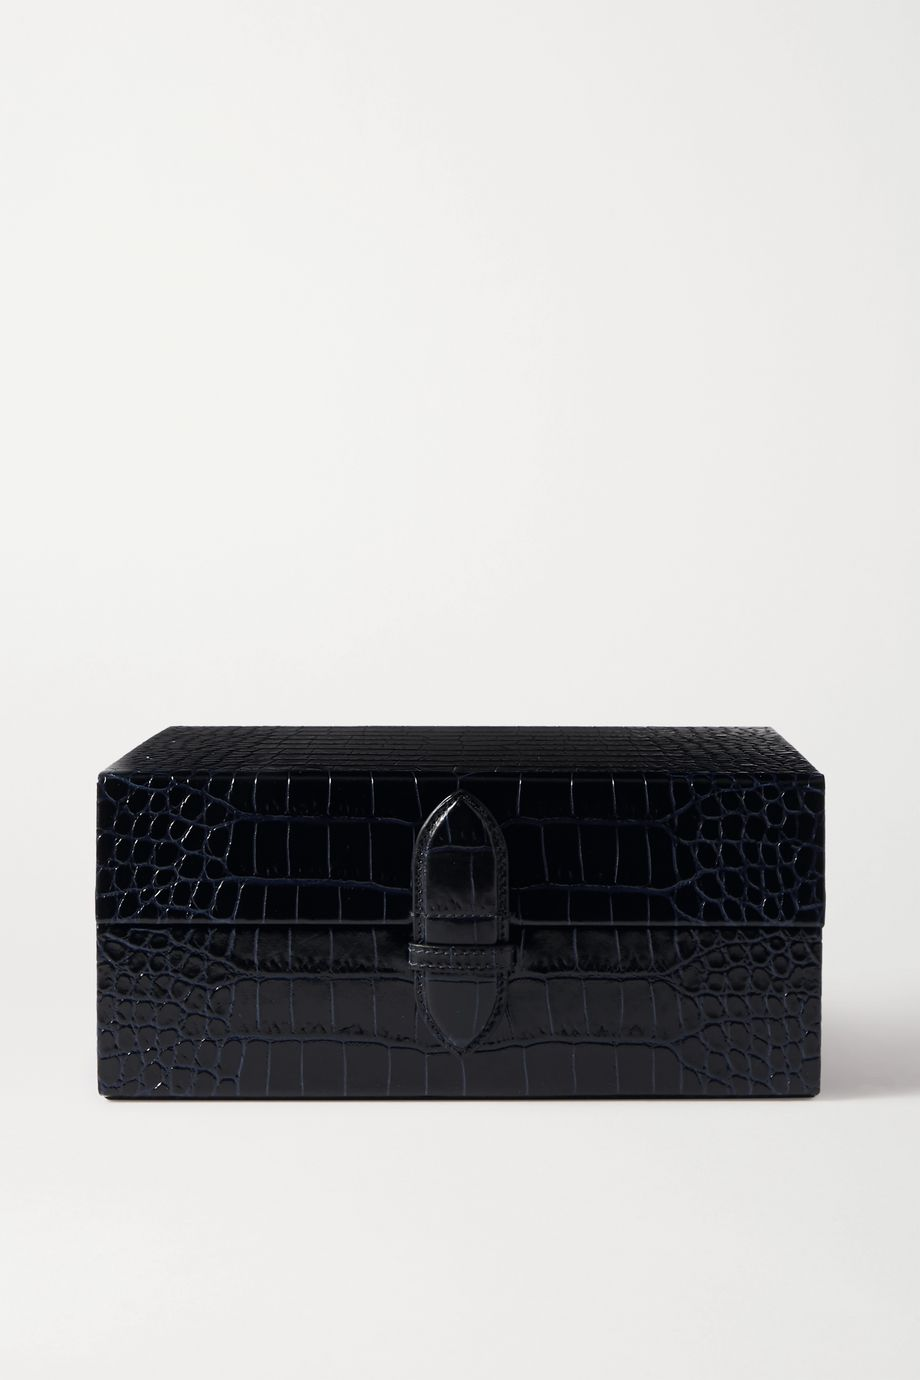 Smythson Mara croc-effect leather jewelry box